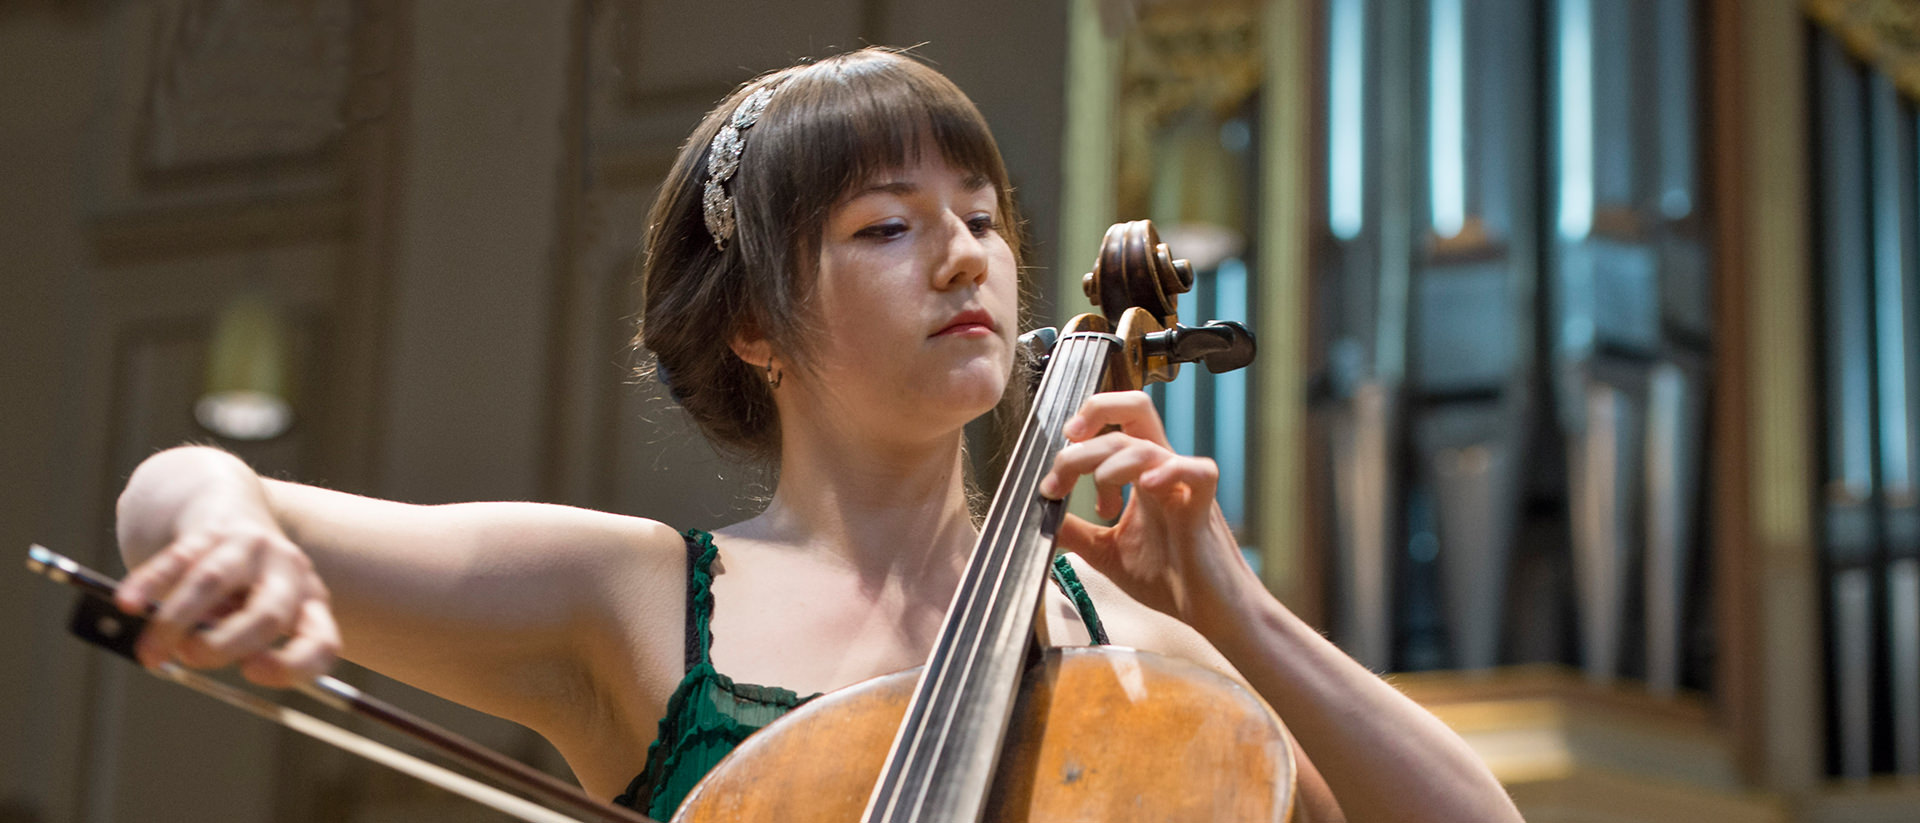 Vanessa Hunt Russell performs on her cello at a chamber music concert